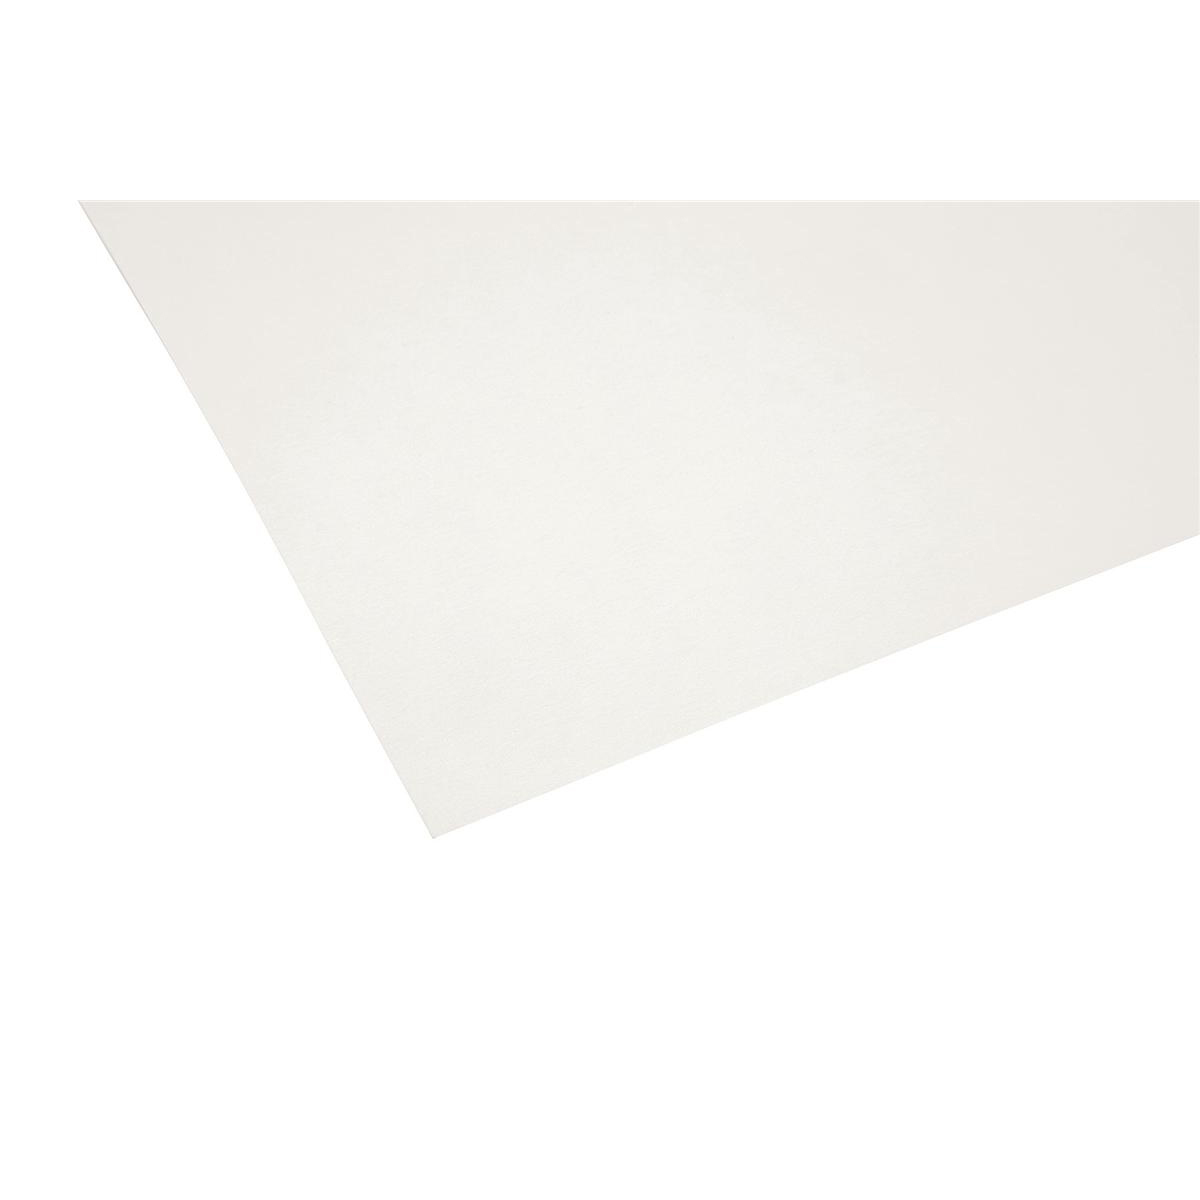 Blotting Paper Full Demy W570xD445mm Flat White 50 Sheets